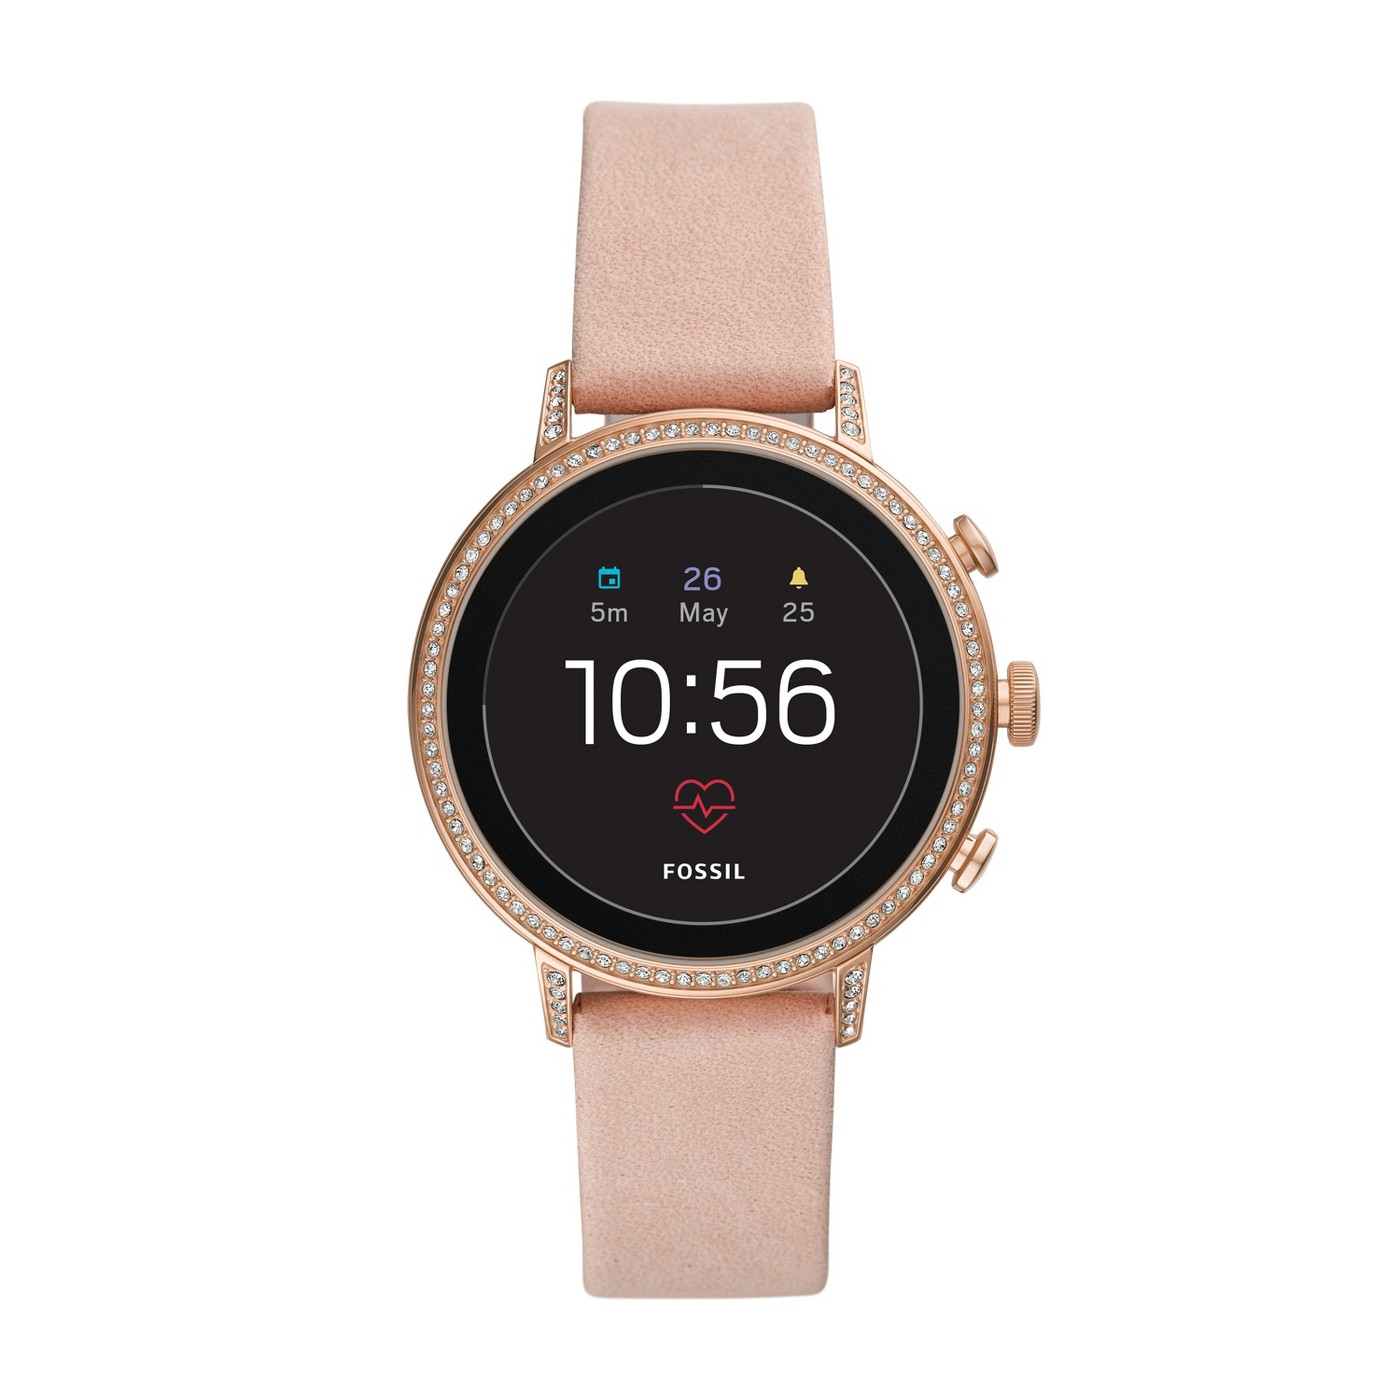 Fossil Gen 4 Smartwatch - Venture HR 40mm Blush Leather - image 1 of 5